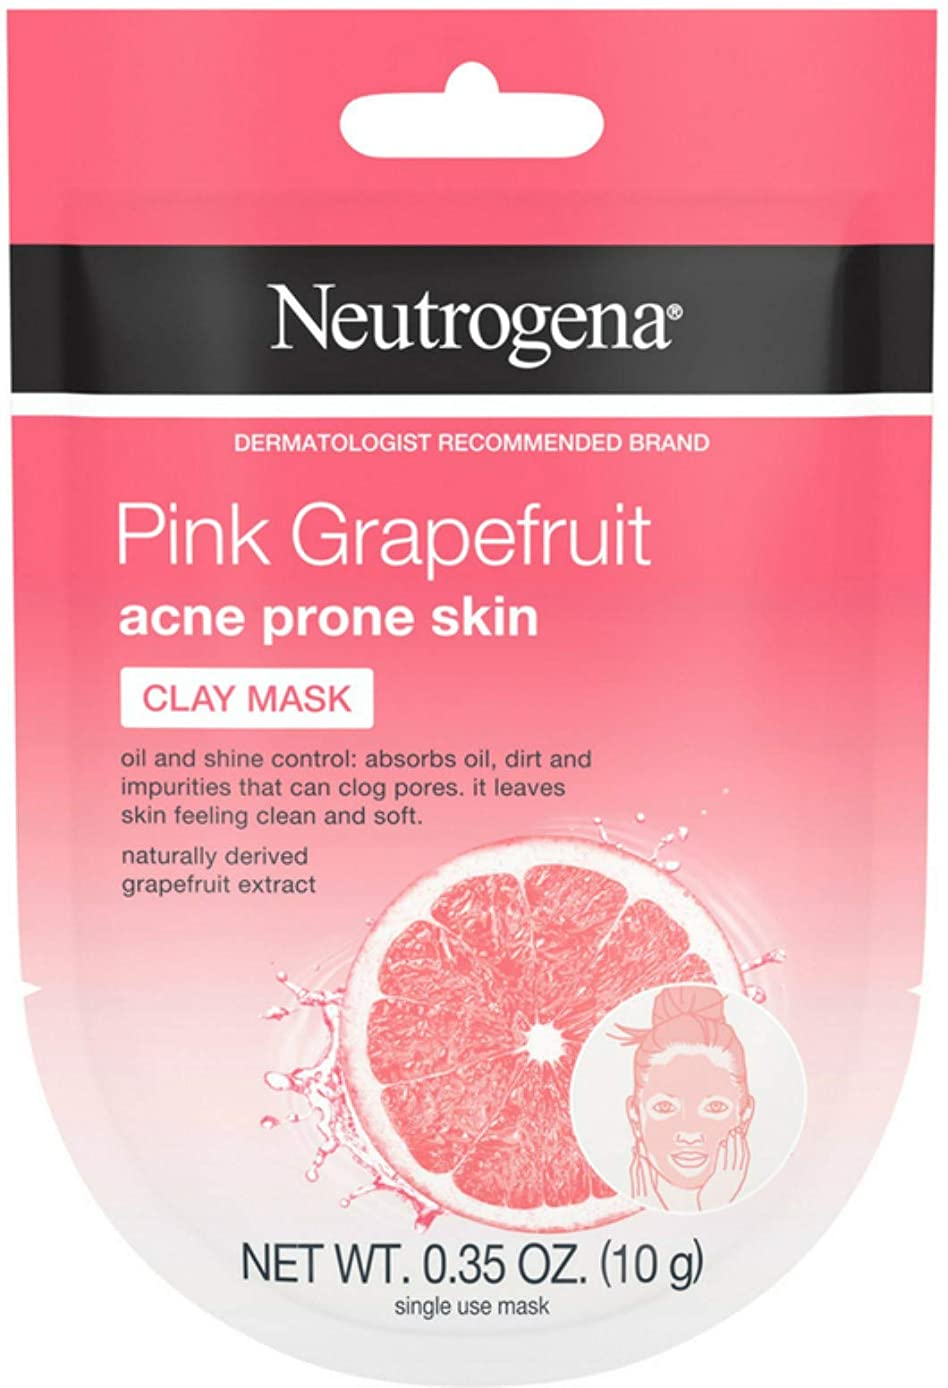 Neutrogena Pink Grapefruit Clay Face Mask Acne Prone Skin Grapefruit Extract, Oil Control & Shine Control, Single-Use 0.35 oz (Pack of 4)